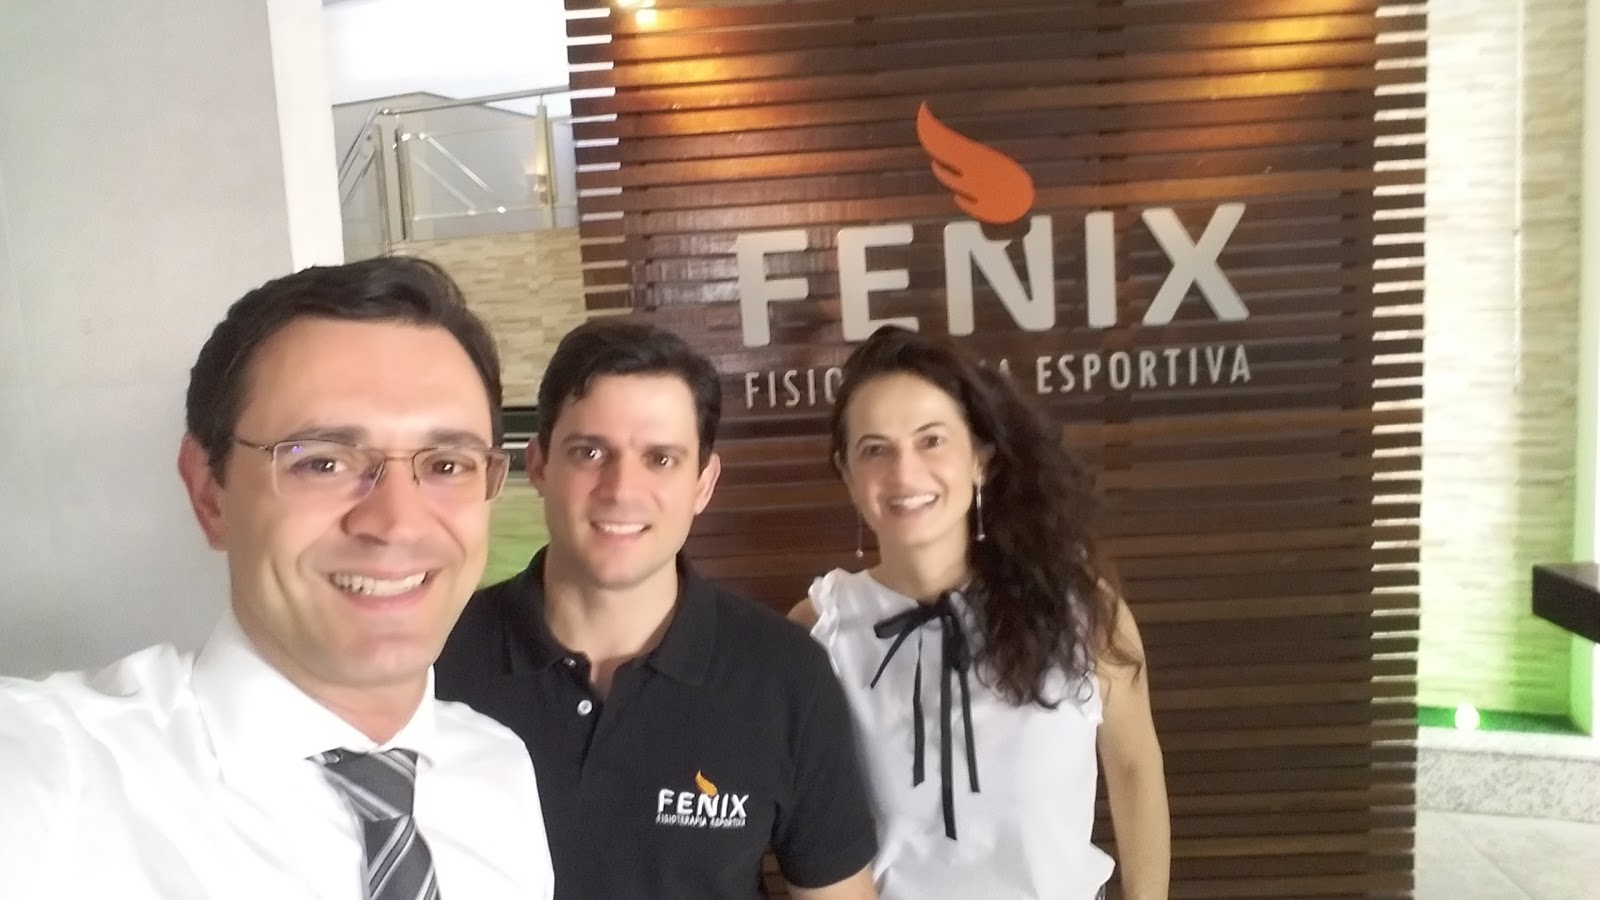 Fenix Fisioterapia Esportiva - photo